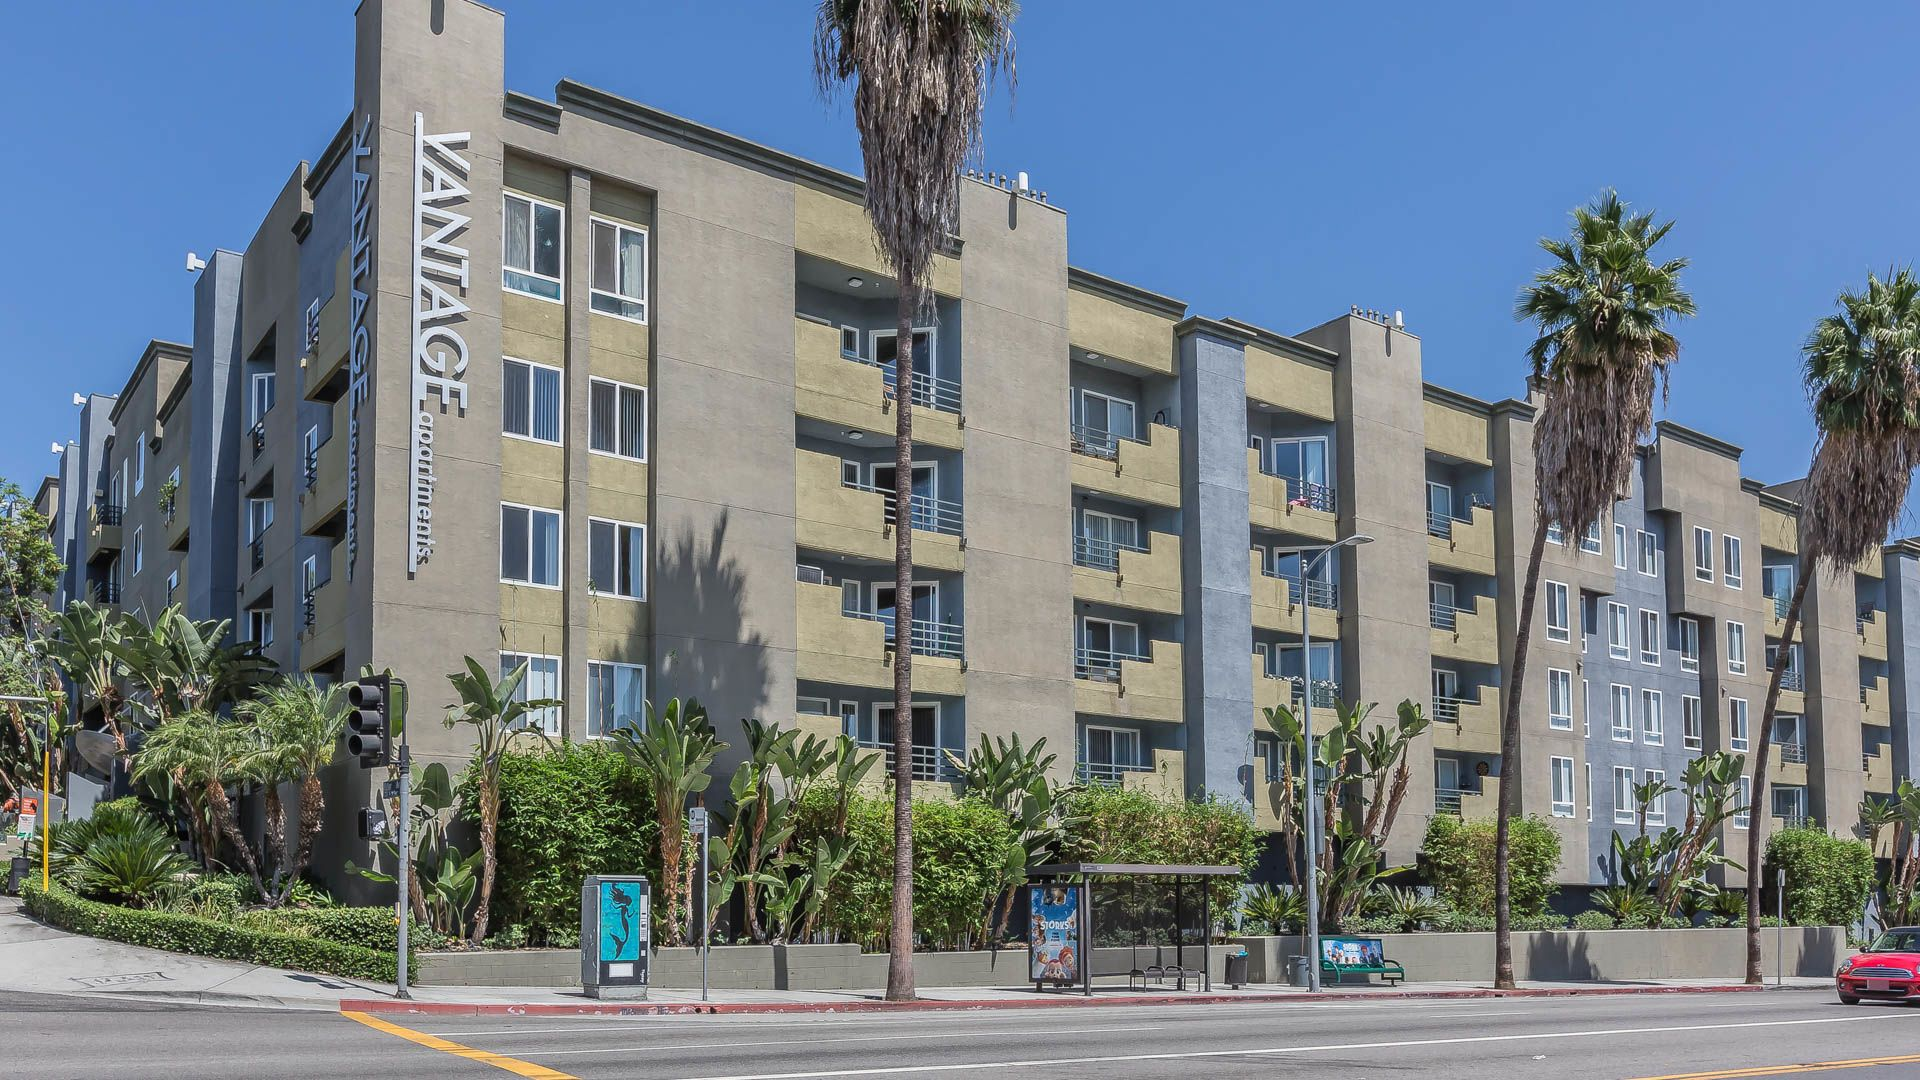 3 Bedroom Apartments Los Angeles | Vantage Hollywood Apartments Hollywood Equityapartments Com